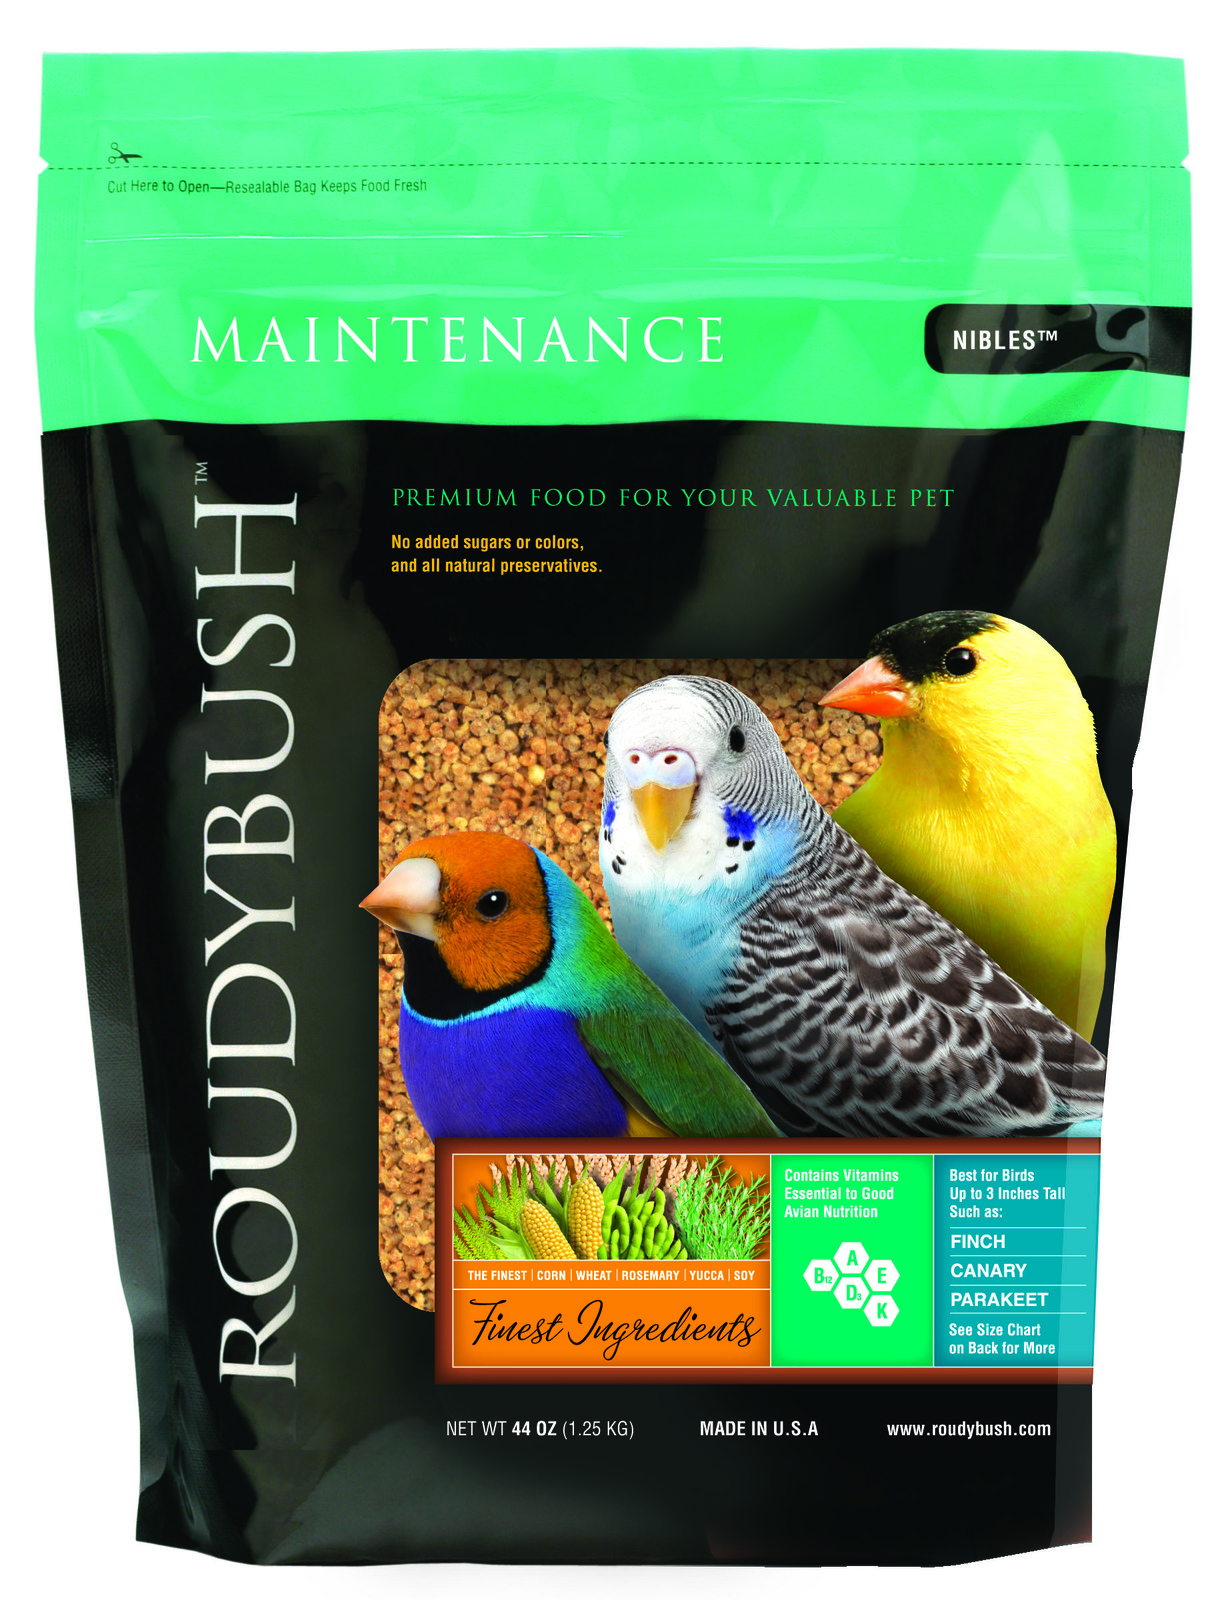 Roudybush Daily Maintenance - Nibles